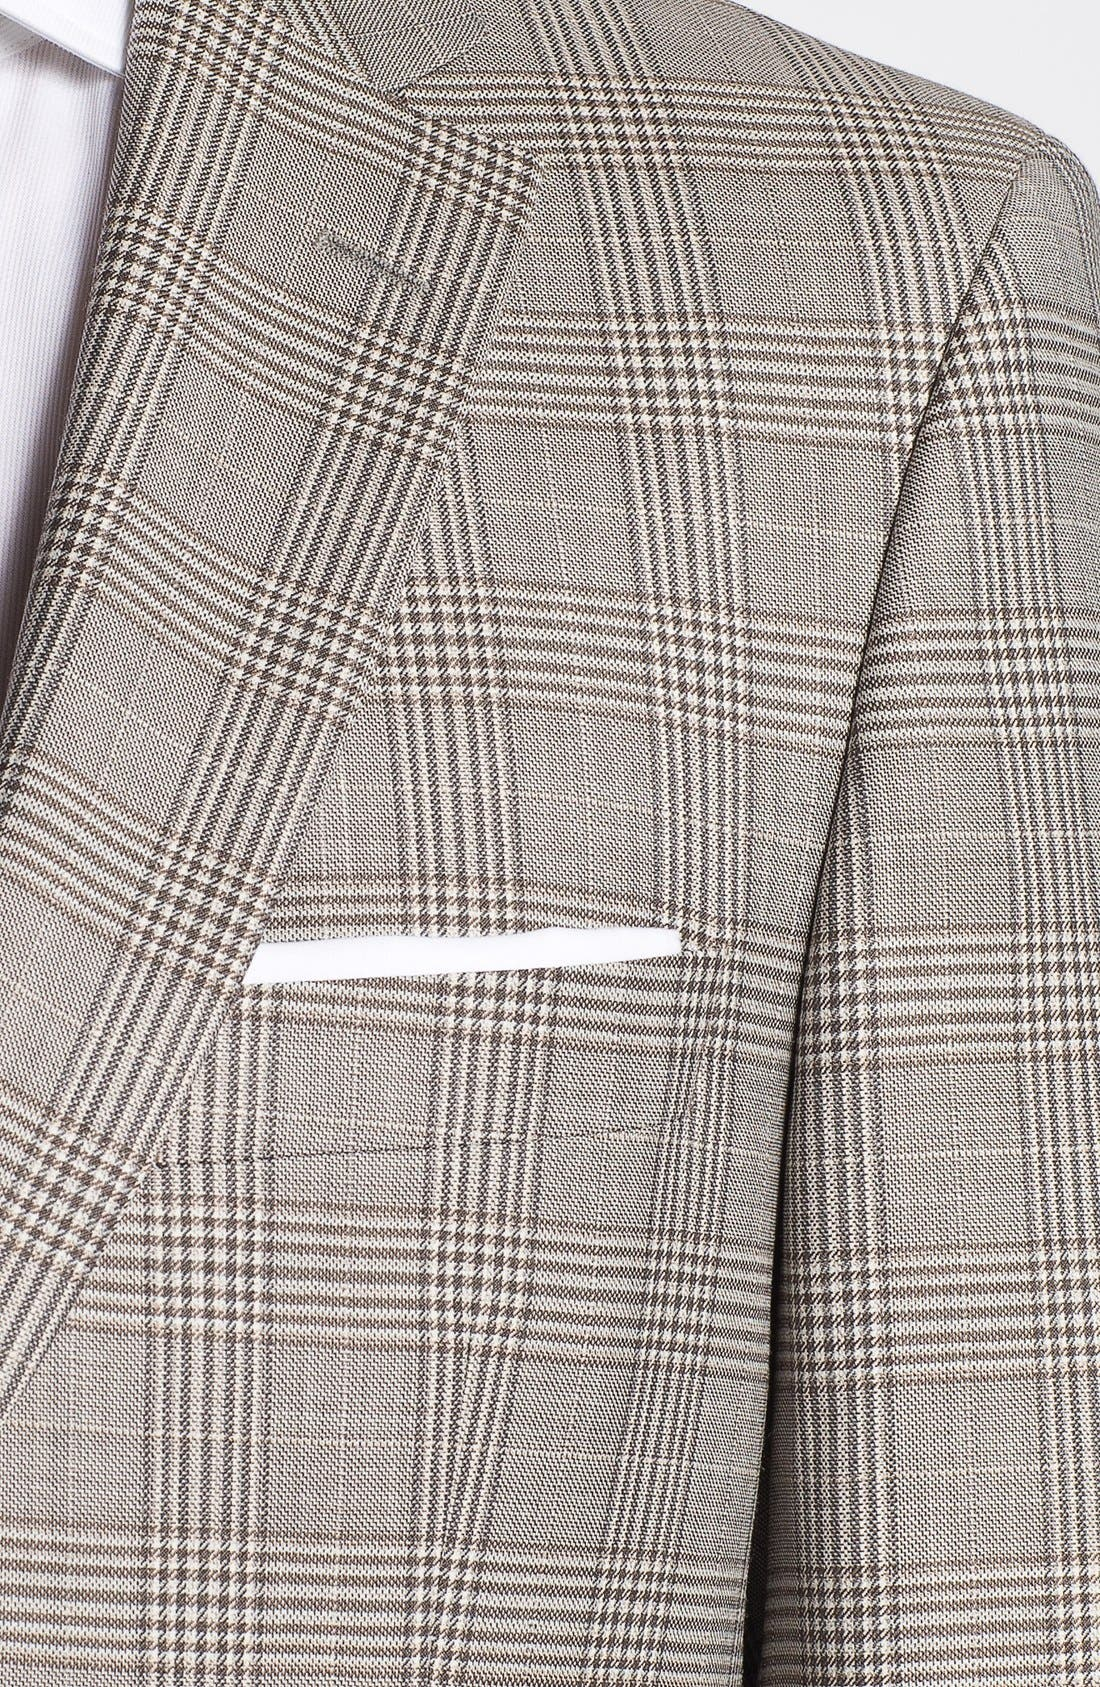 Alternate Image 2  - BOSS HUGO BOSS 'Pasini' Glen Plaid Sportcoat